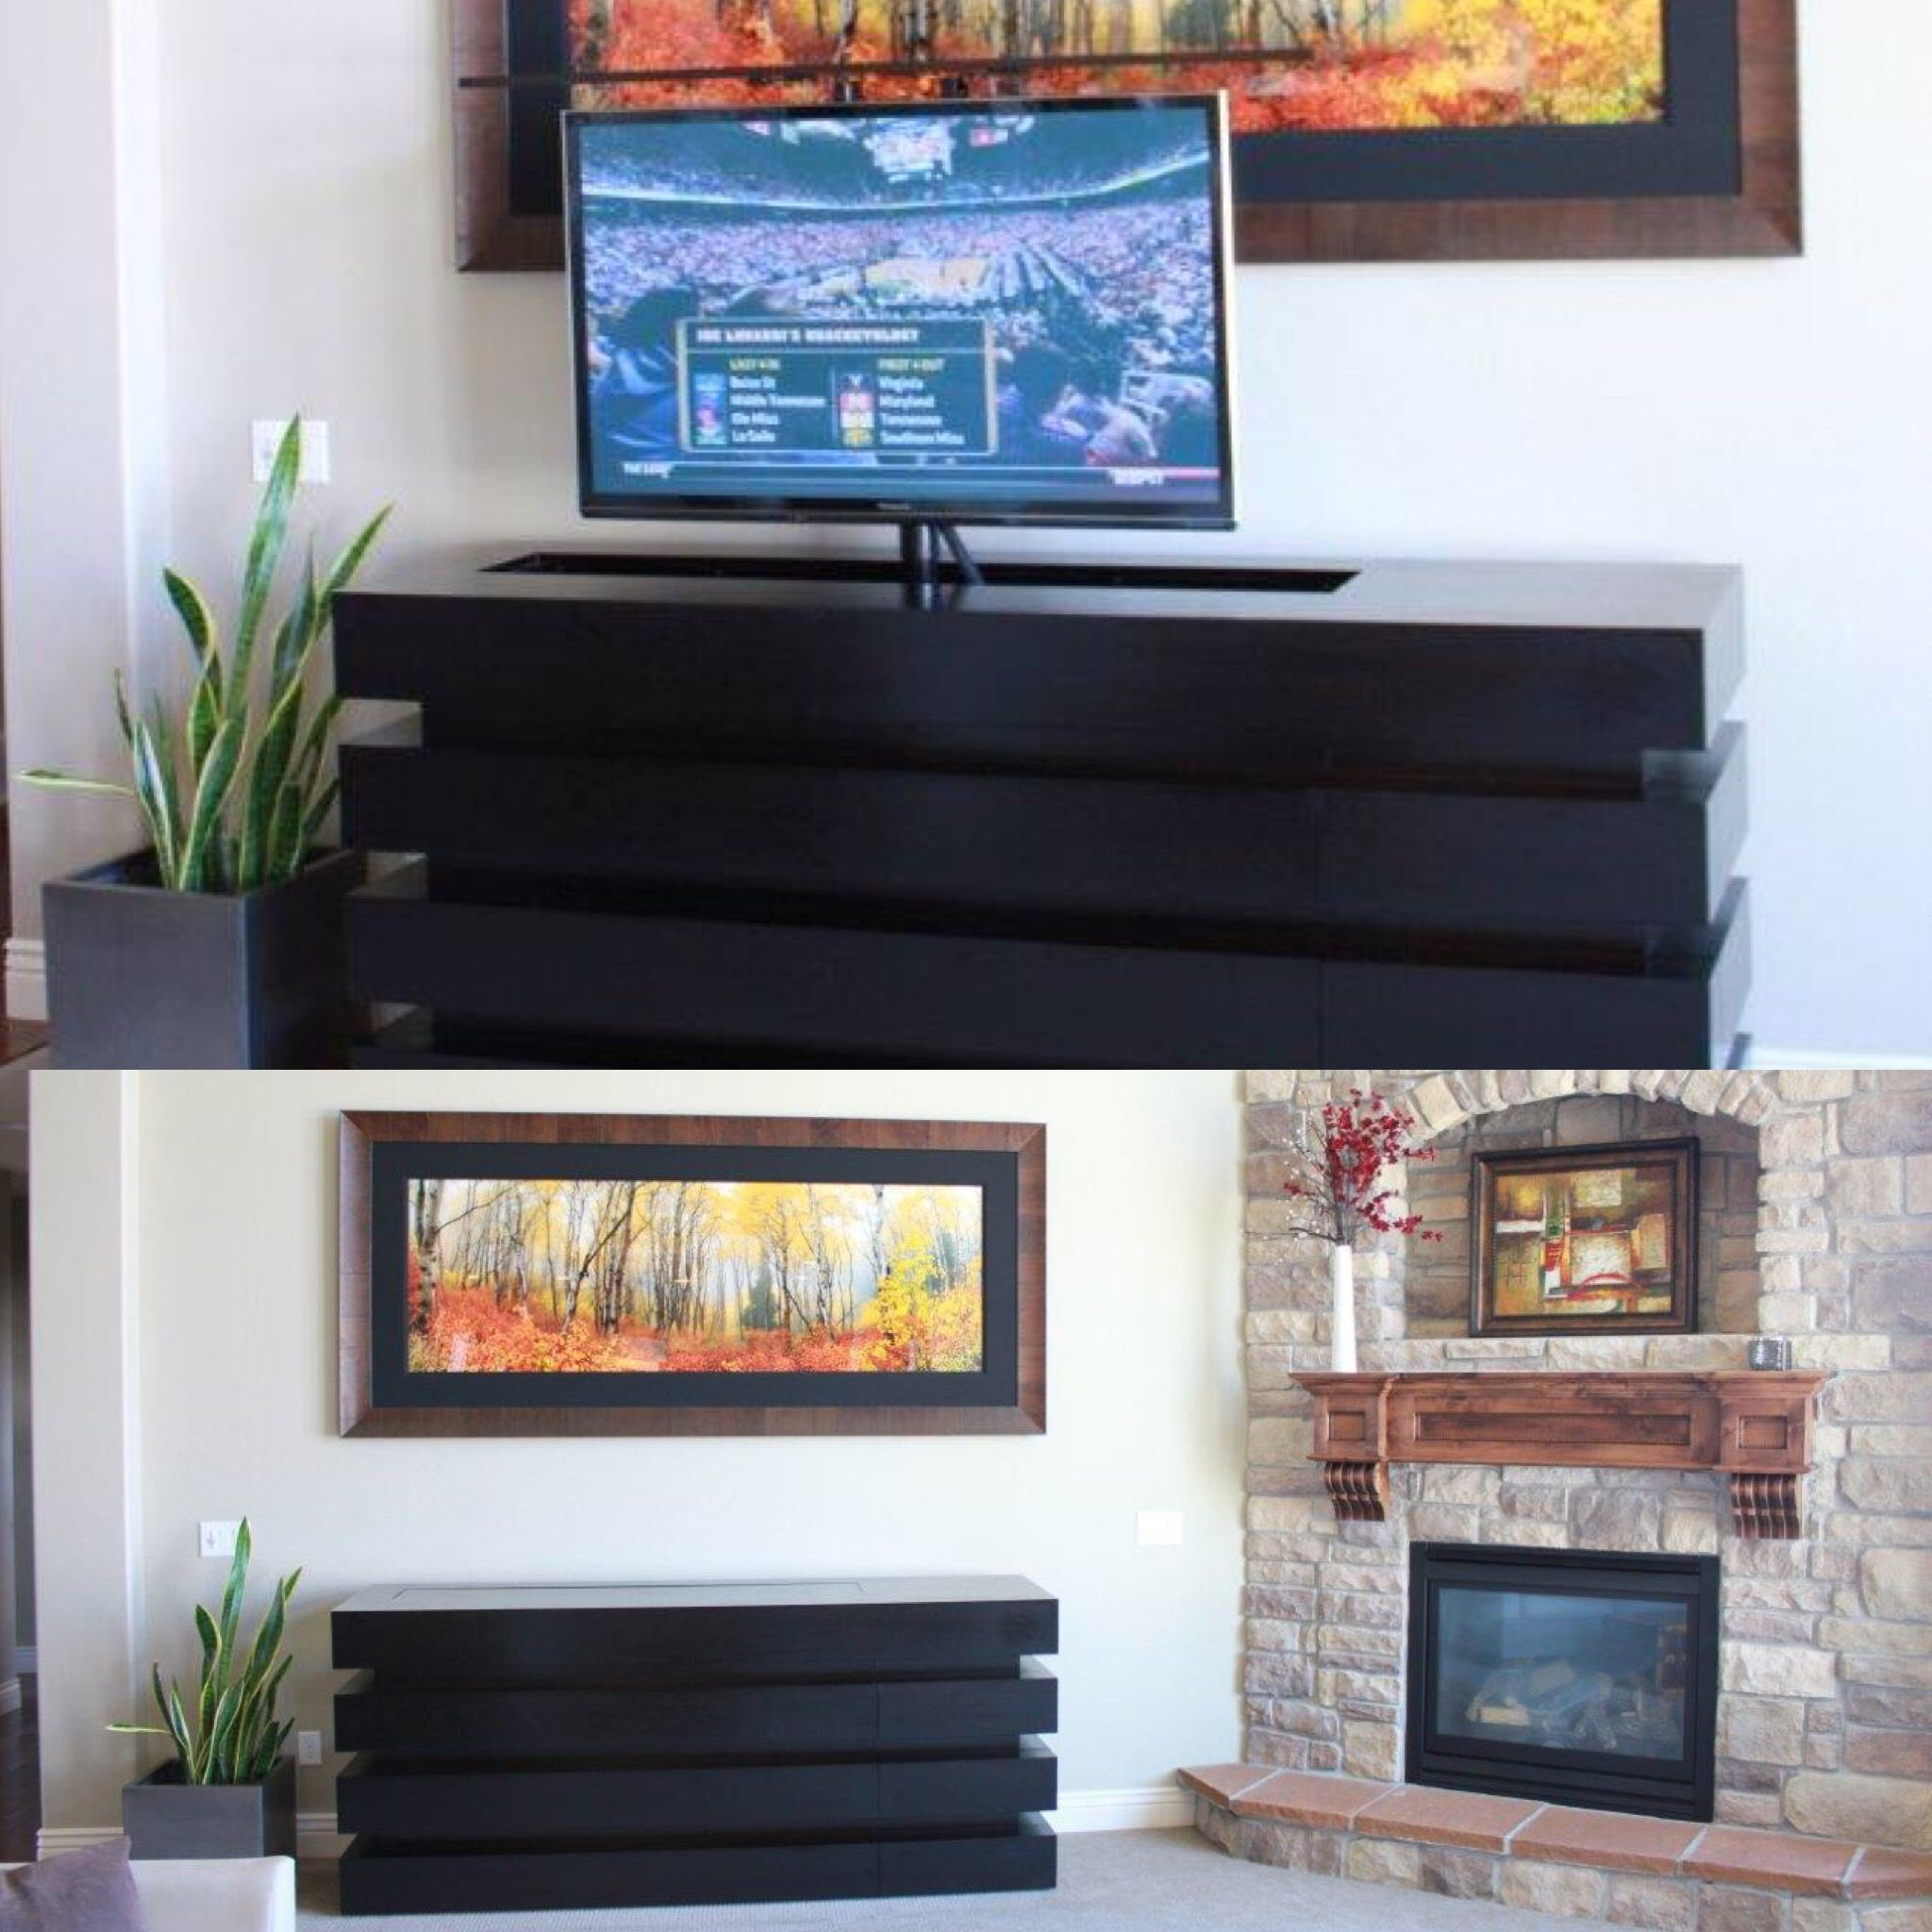 Pop up tv cabinets for flat screens - Le Bloc Buffet In Ebony Finish Placed Next To Fire Place Under Painting Pop Up Tv Cabinet Lifts Flat Screen Out Of Furniture In Honolulu Hawaii